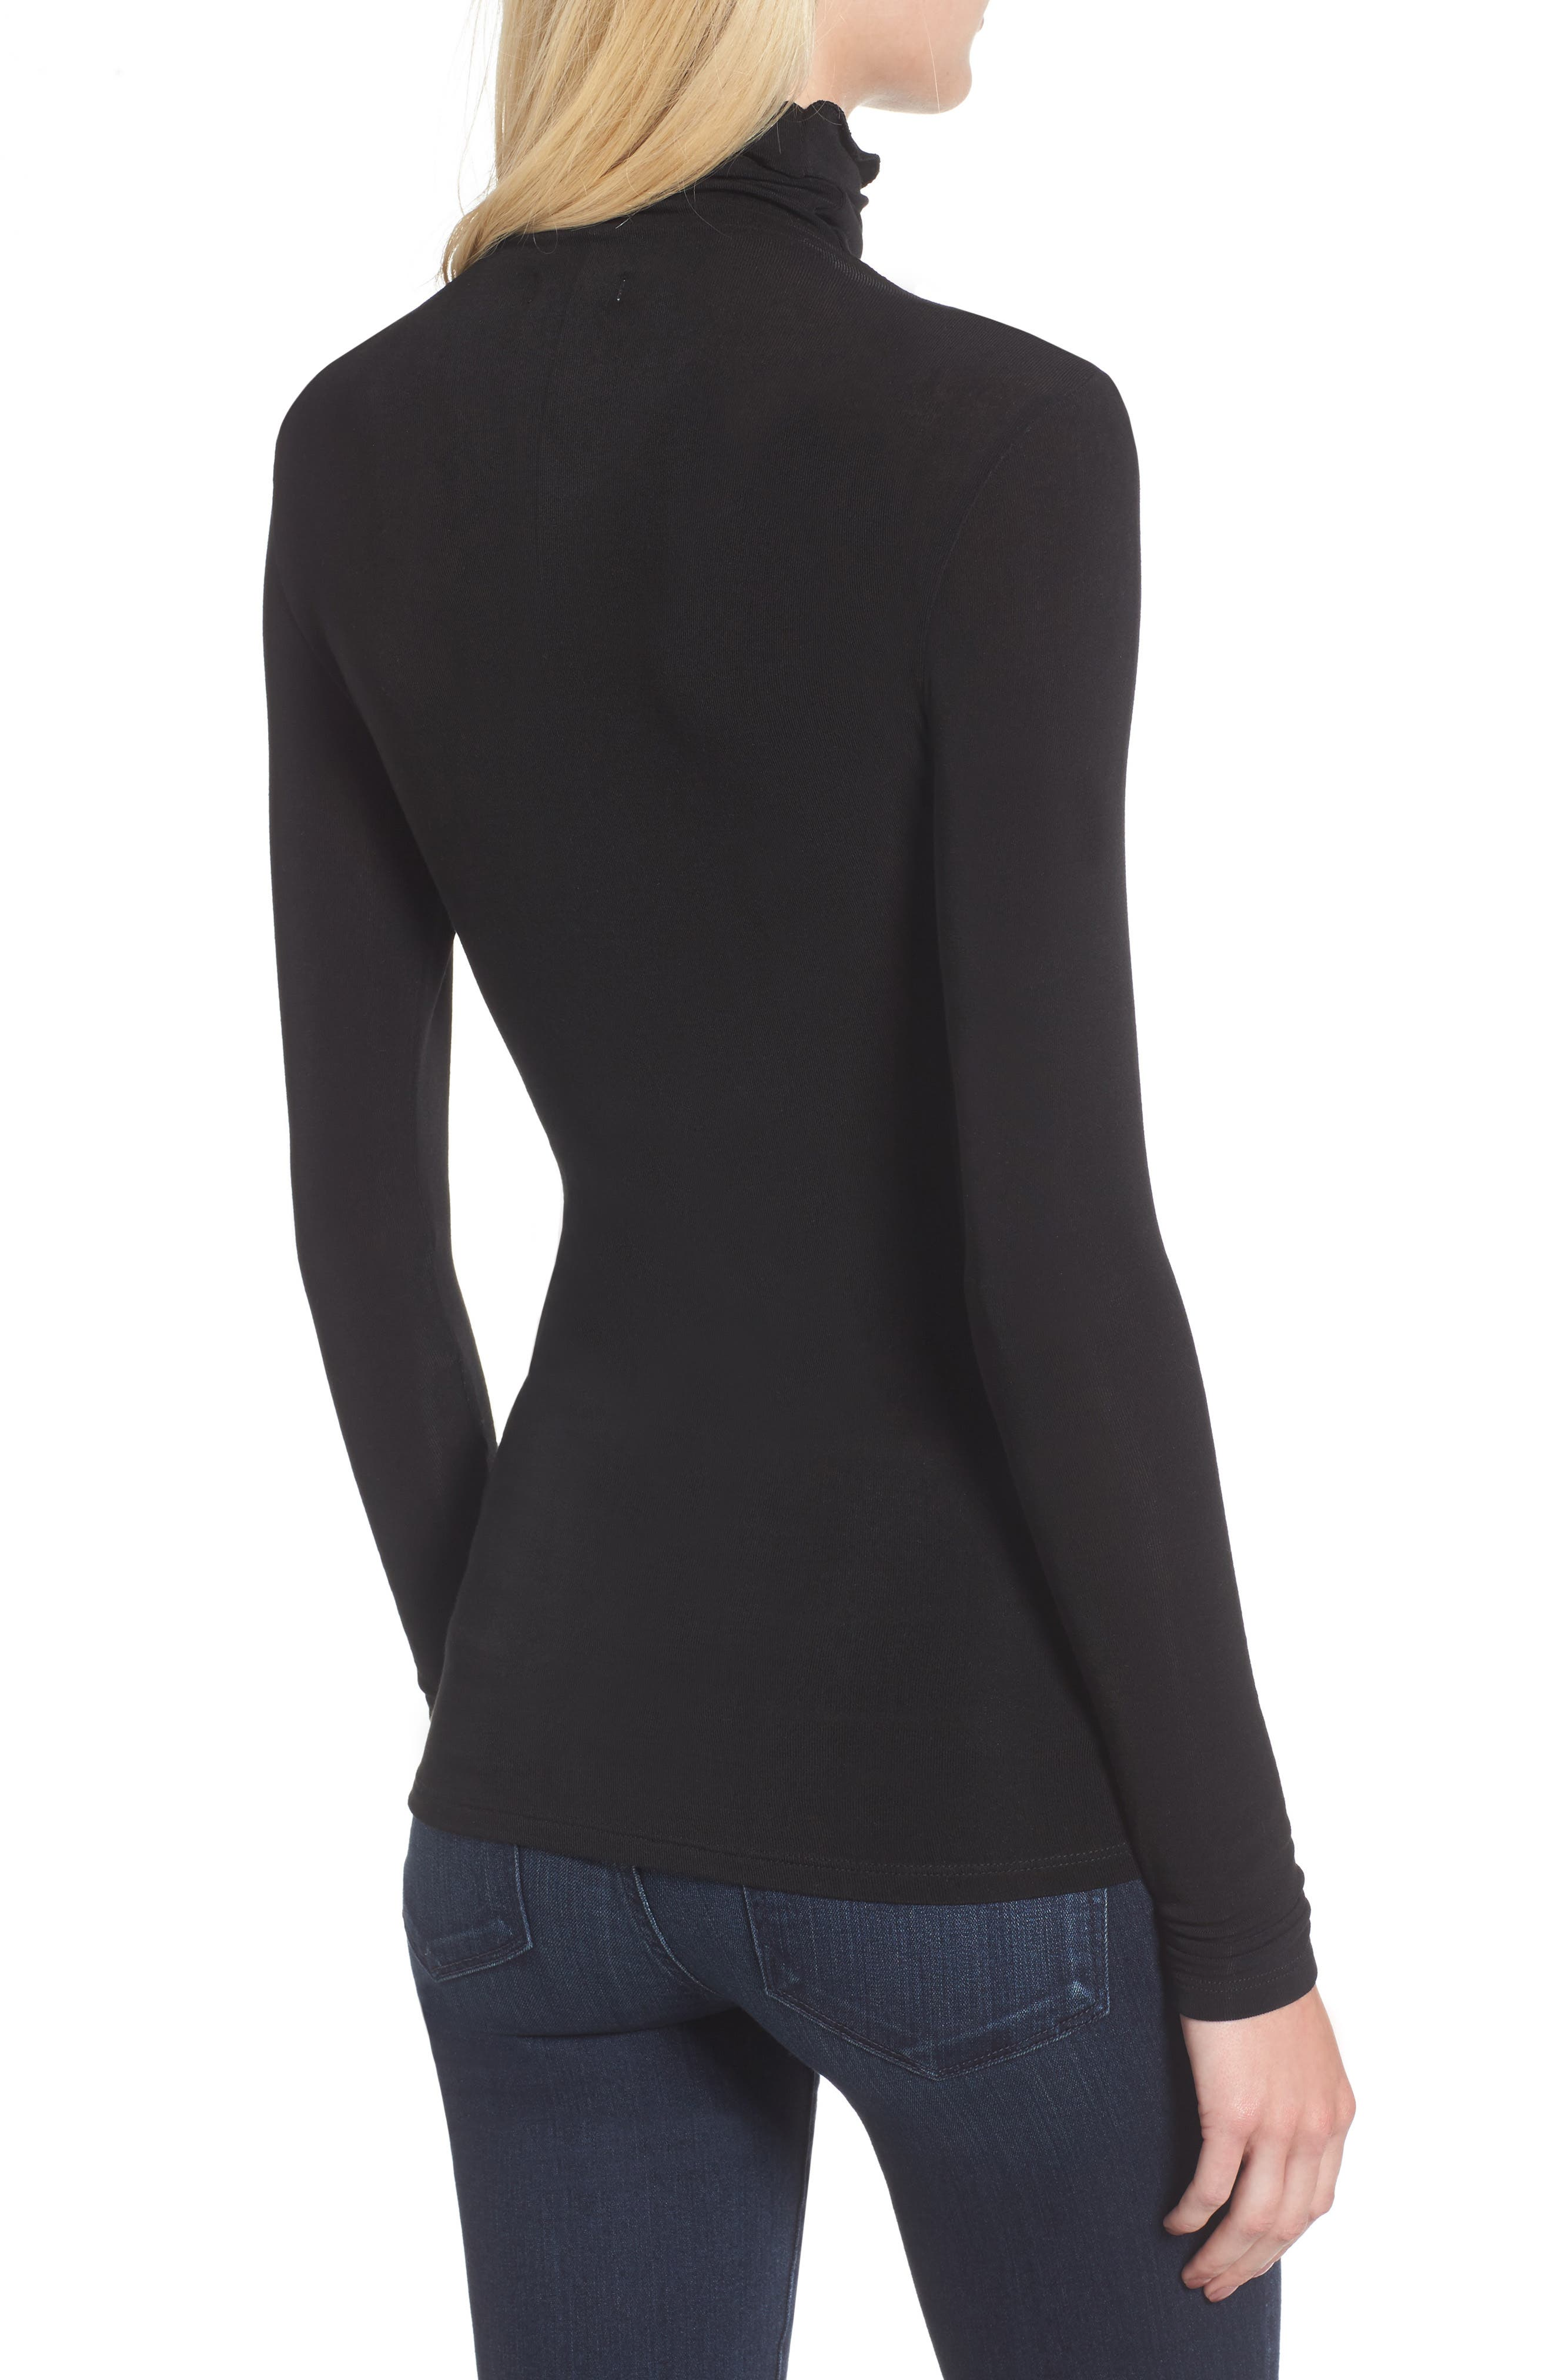 Chelsea28 Wear To Where Looks For Every Occasion Women Nordstrom Bianca Top Leux Studio Silver L